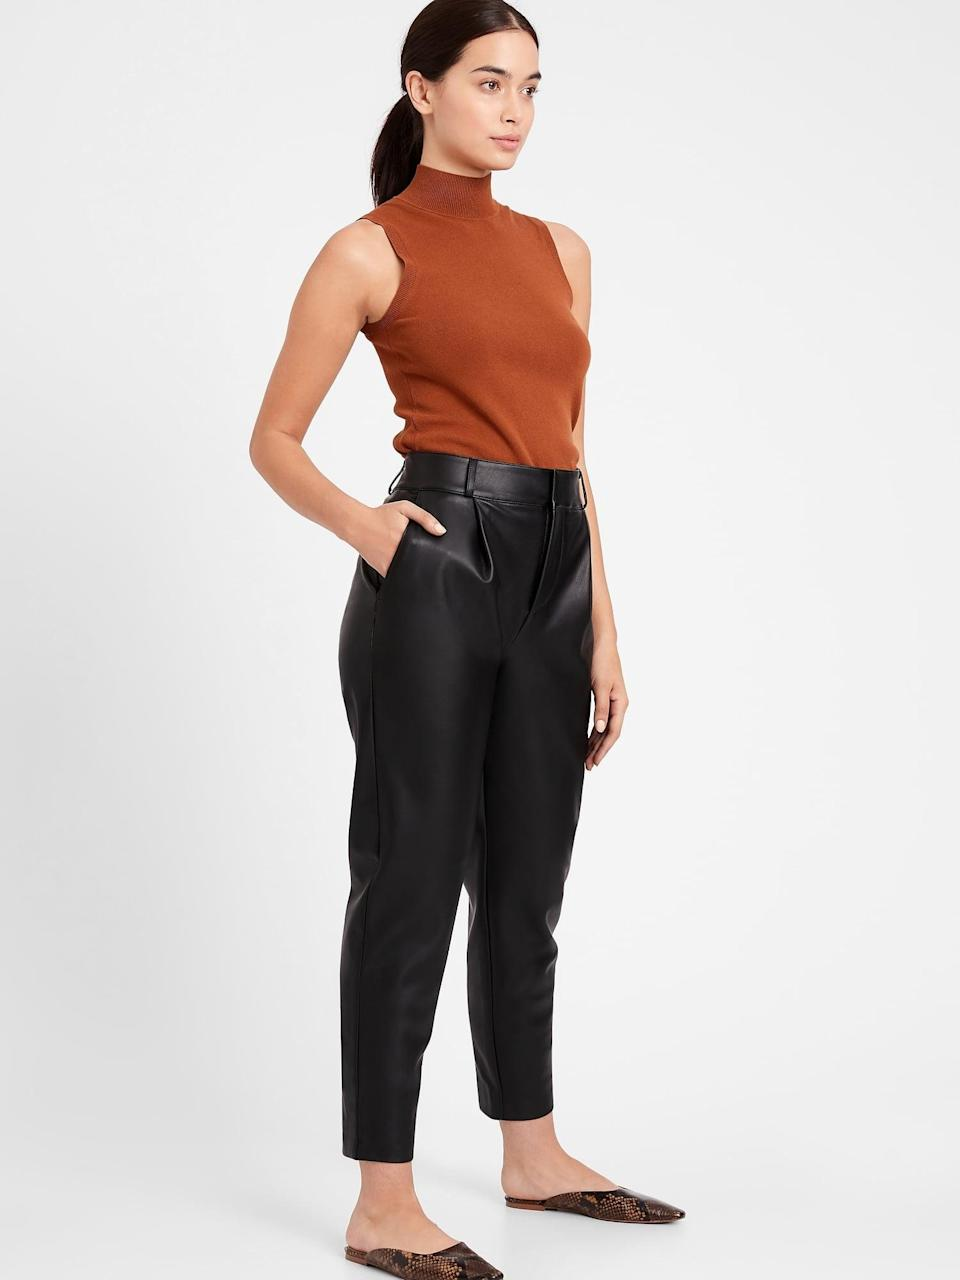 <p>These <span>Banana Republic High-Rise Tapered Vegan Leather Pant</span> ($59, originally $119) are so chic. Pair with a high collar lace blouse for a mix of sweet and edgy!</p>